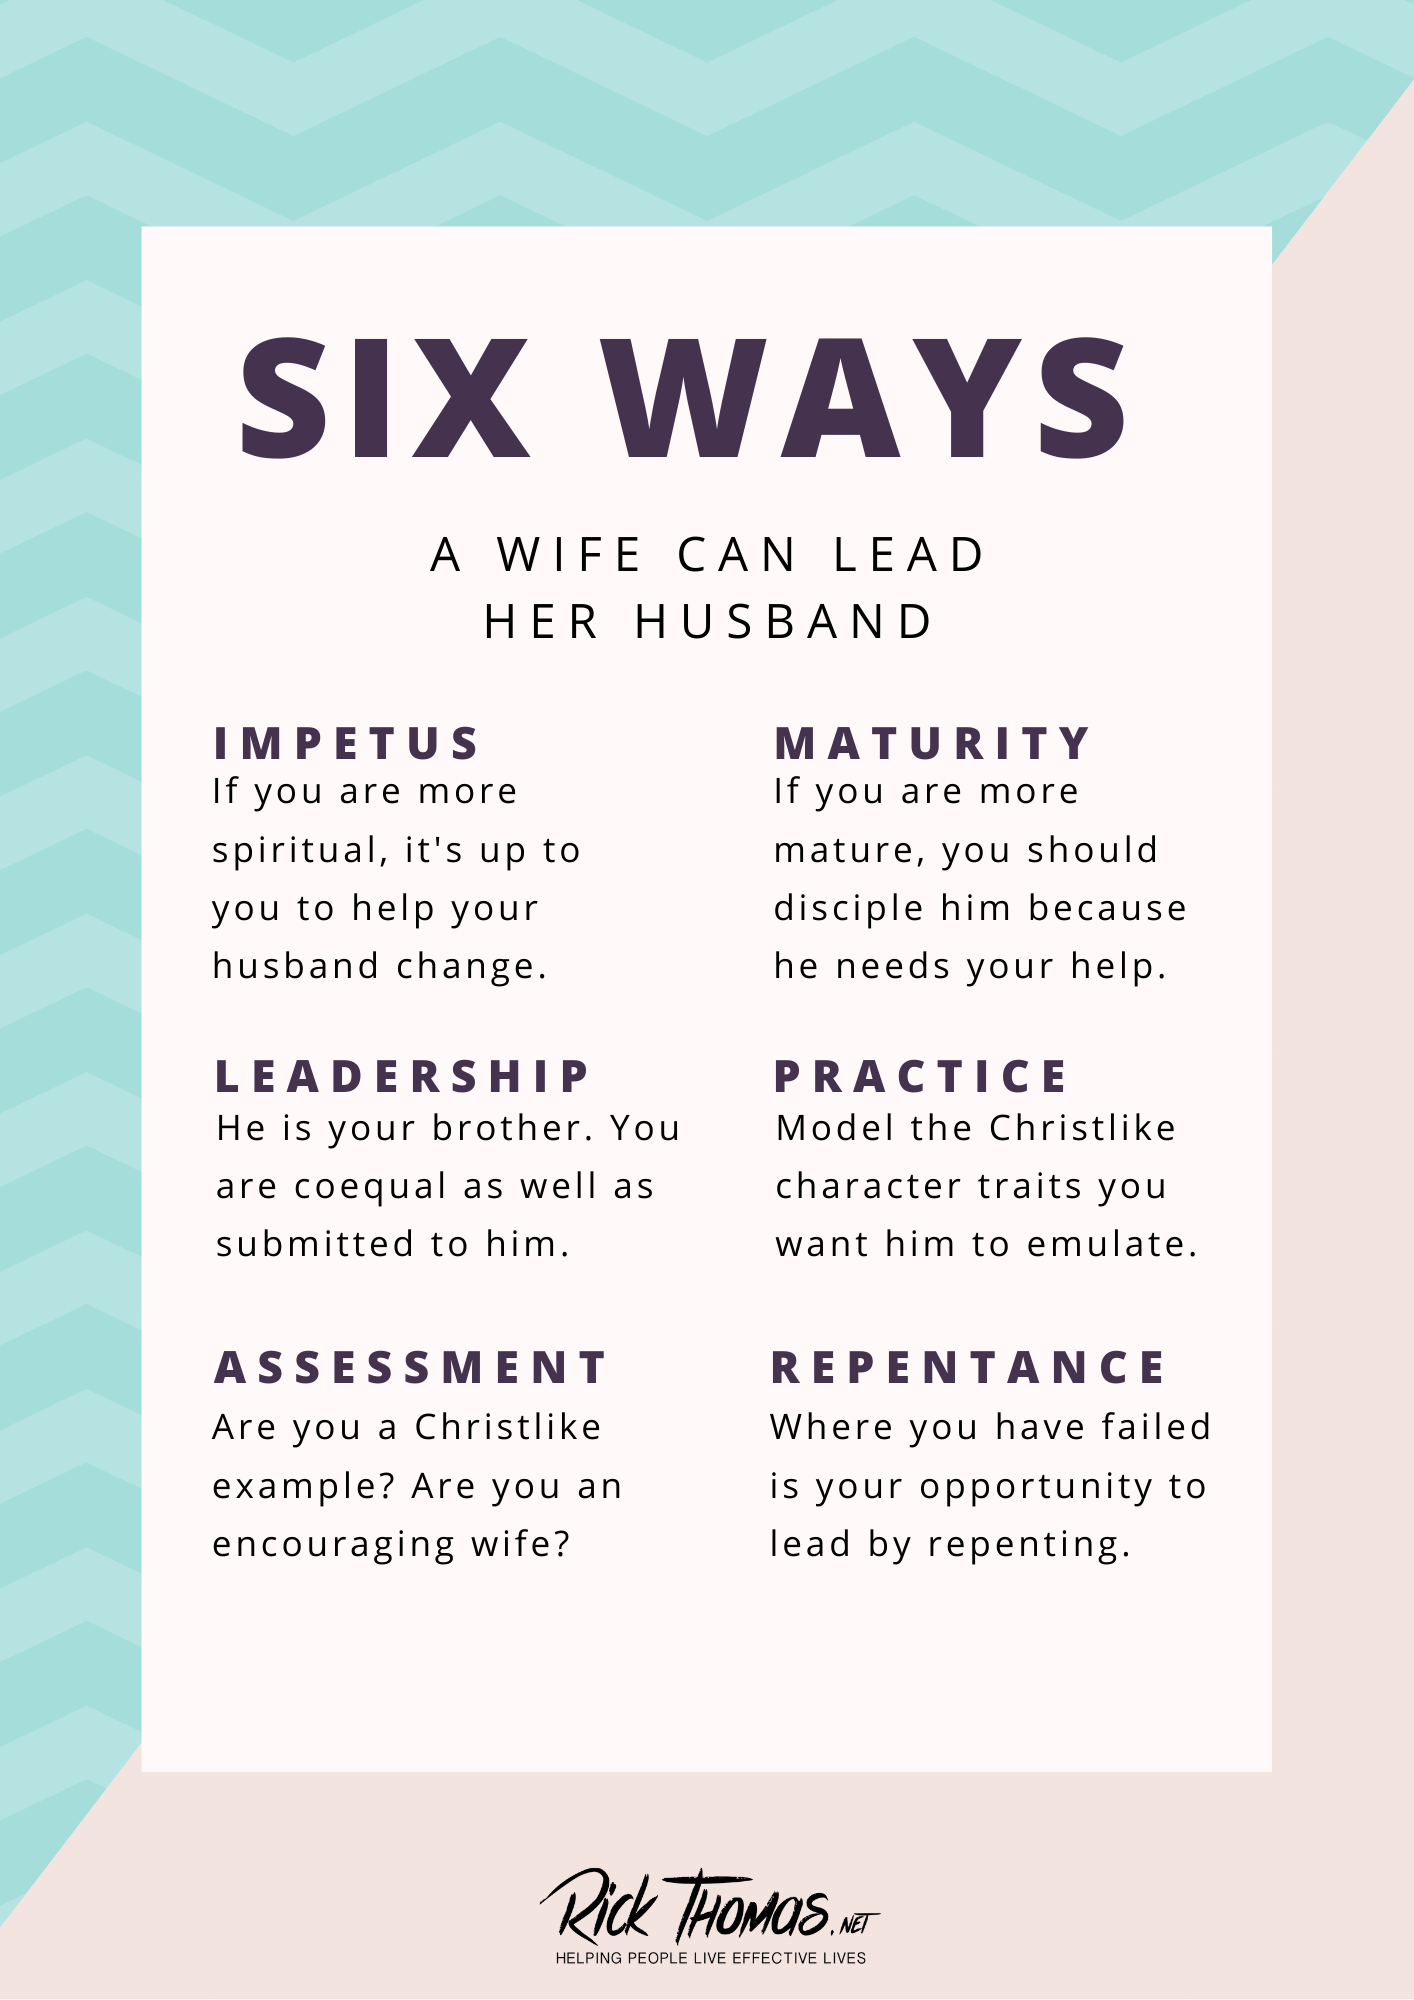 Six Ways a Wife Can Lead Her Husband